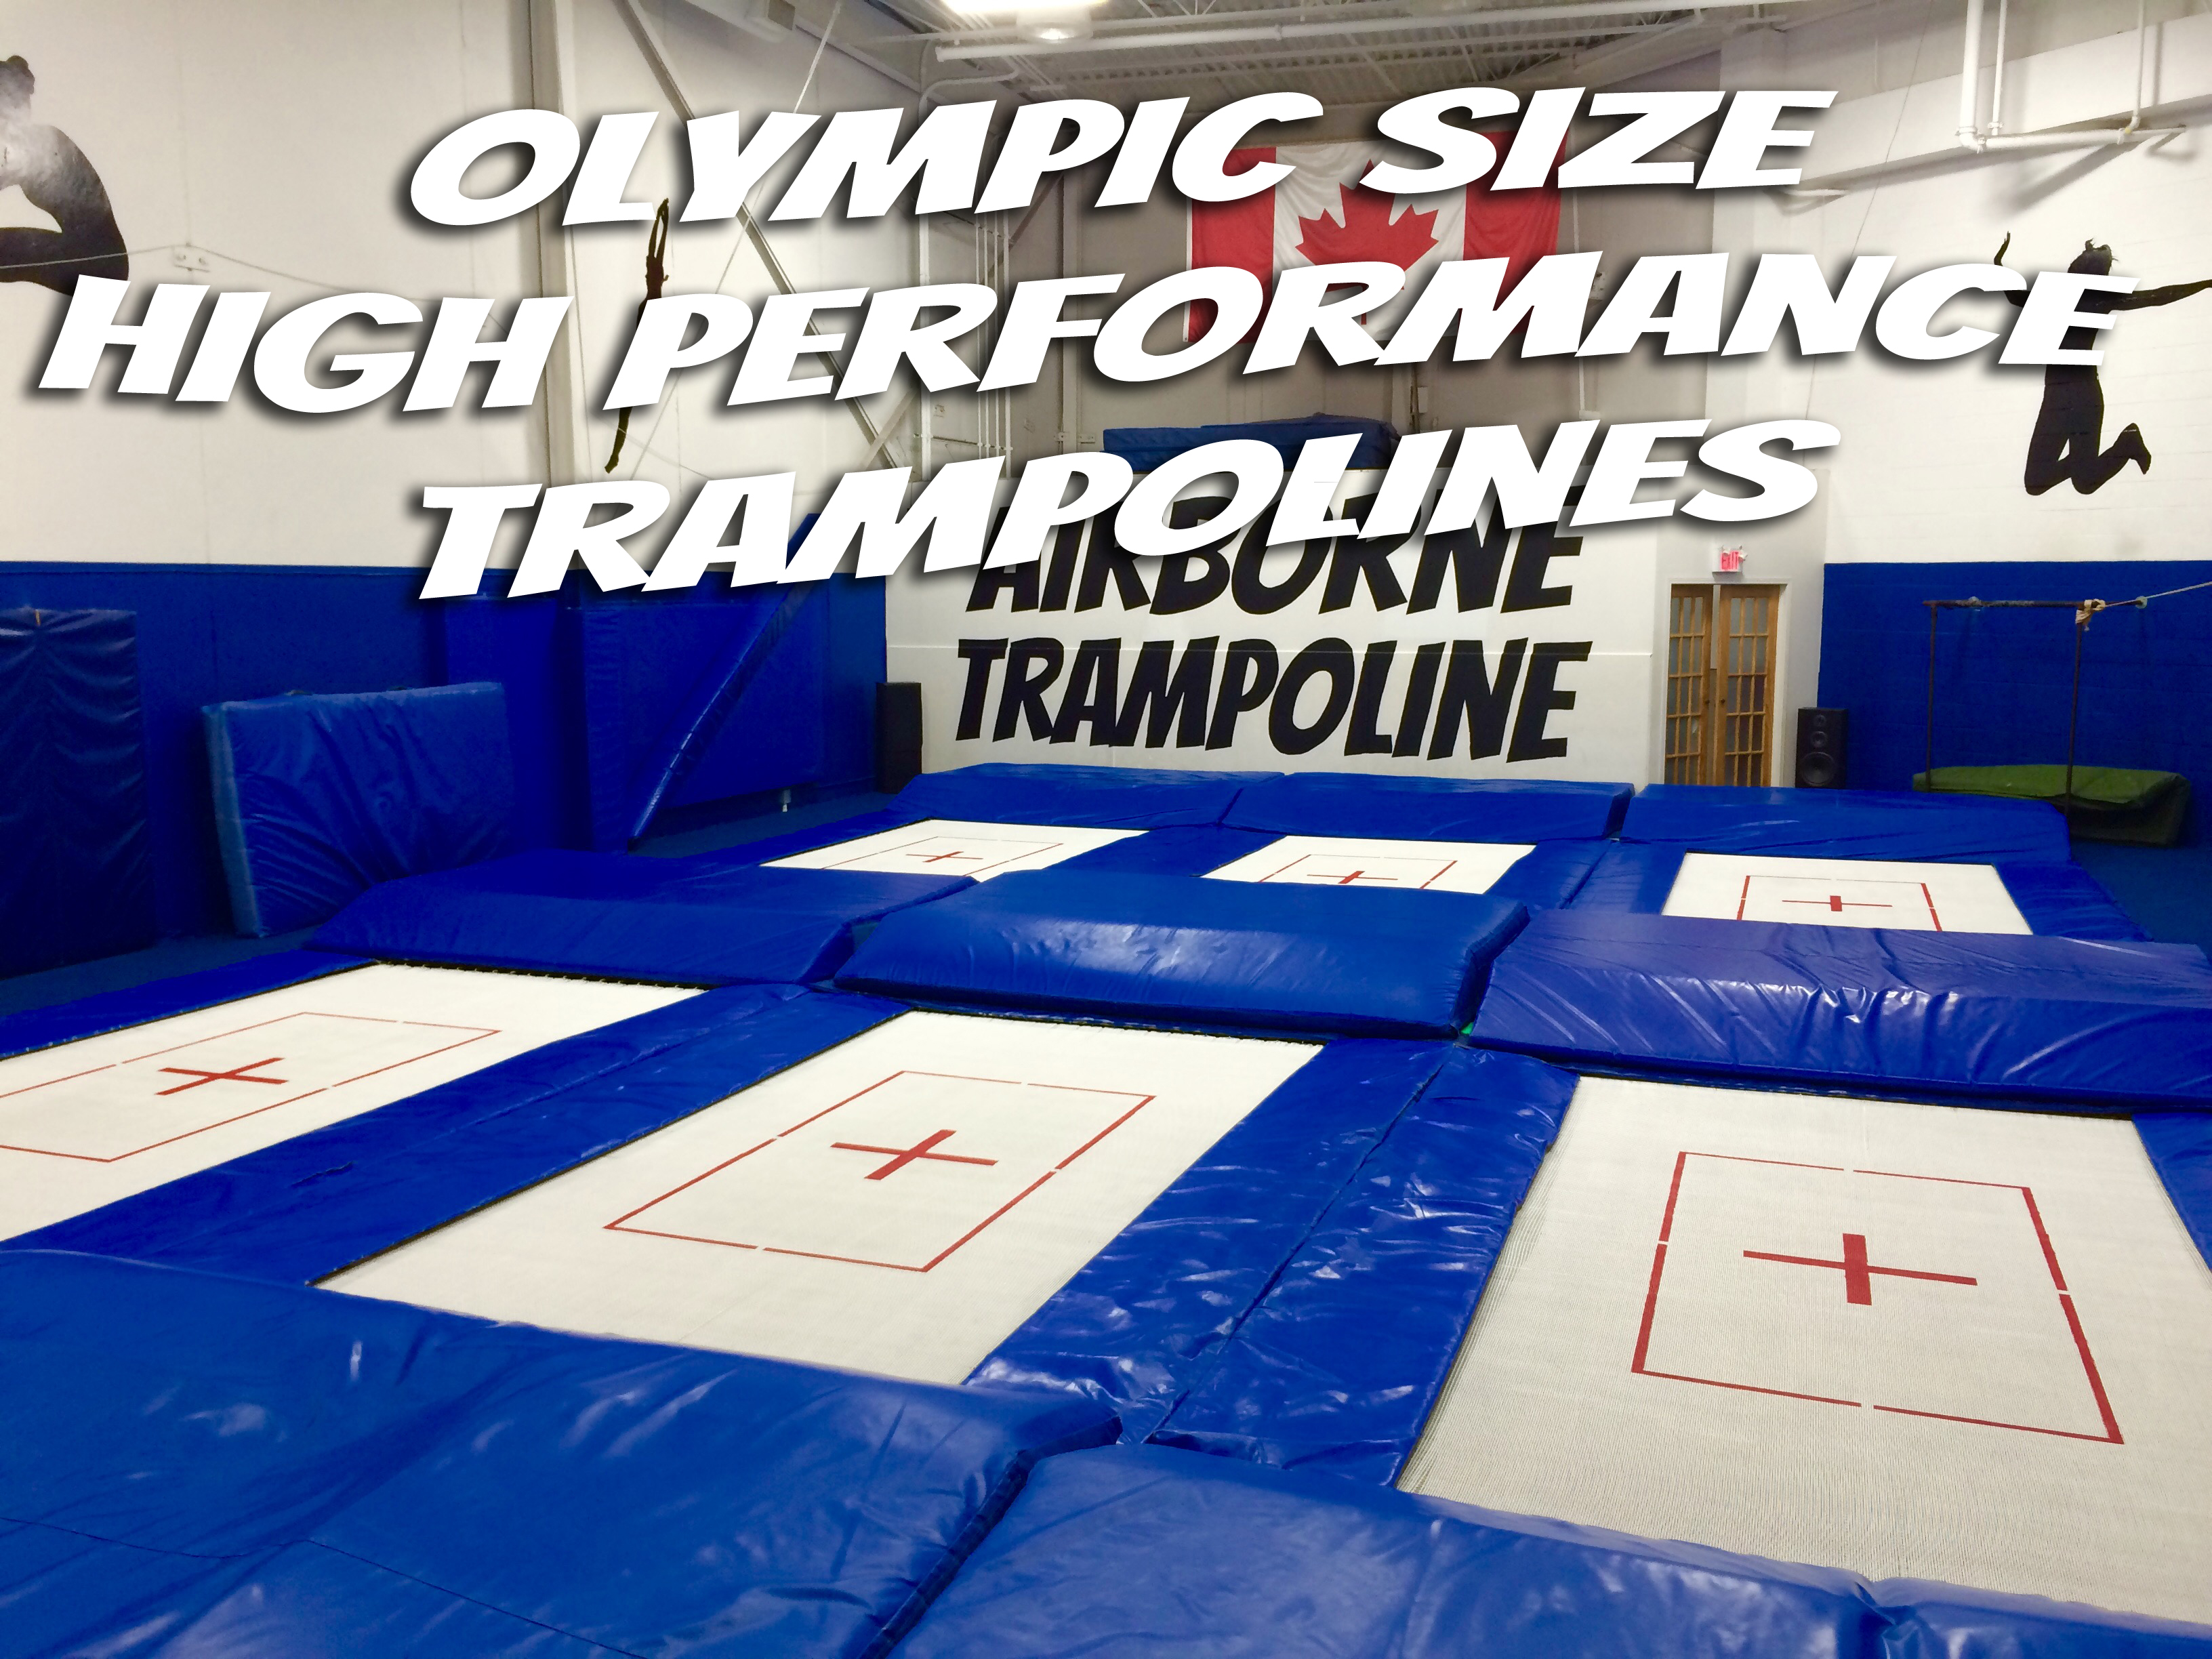 Group Trampoline Trampolines